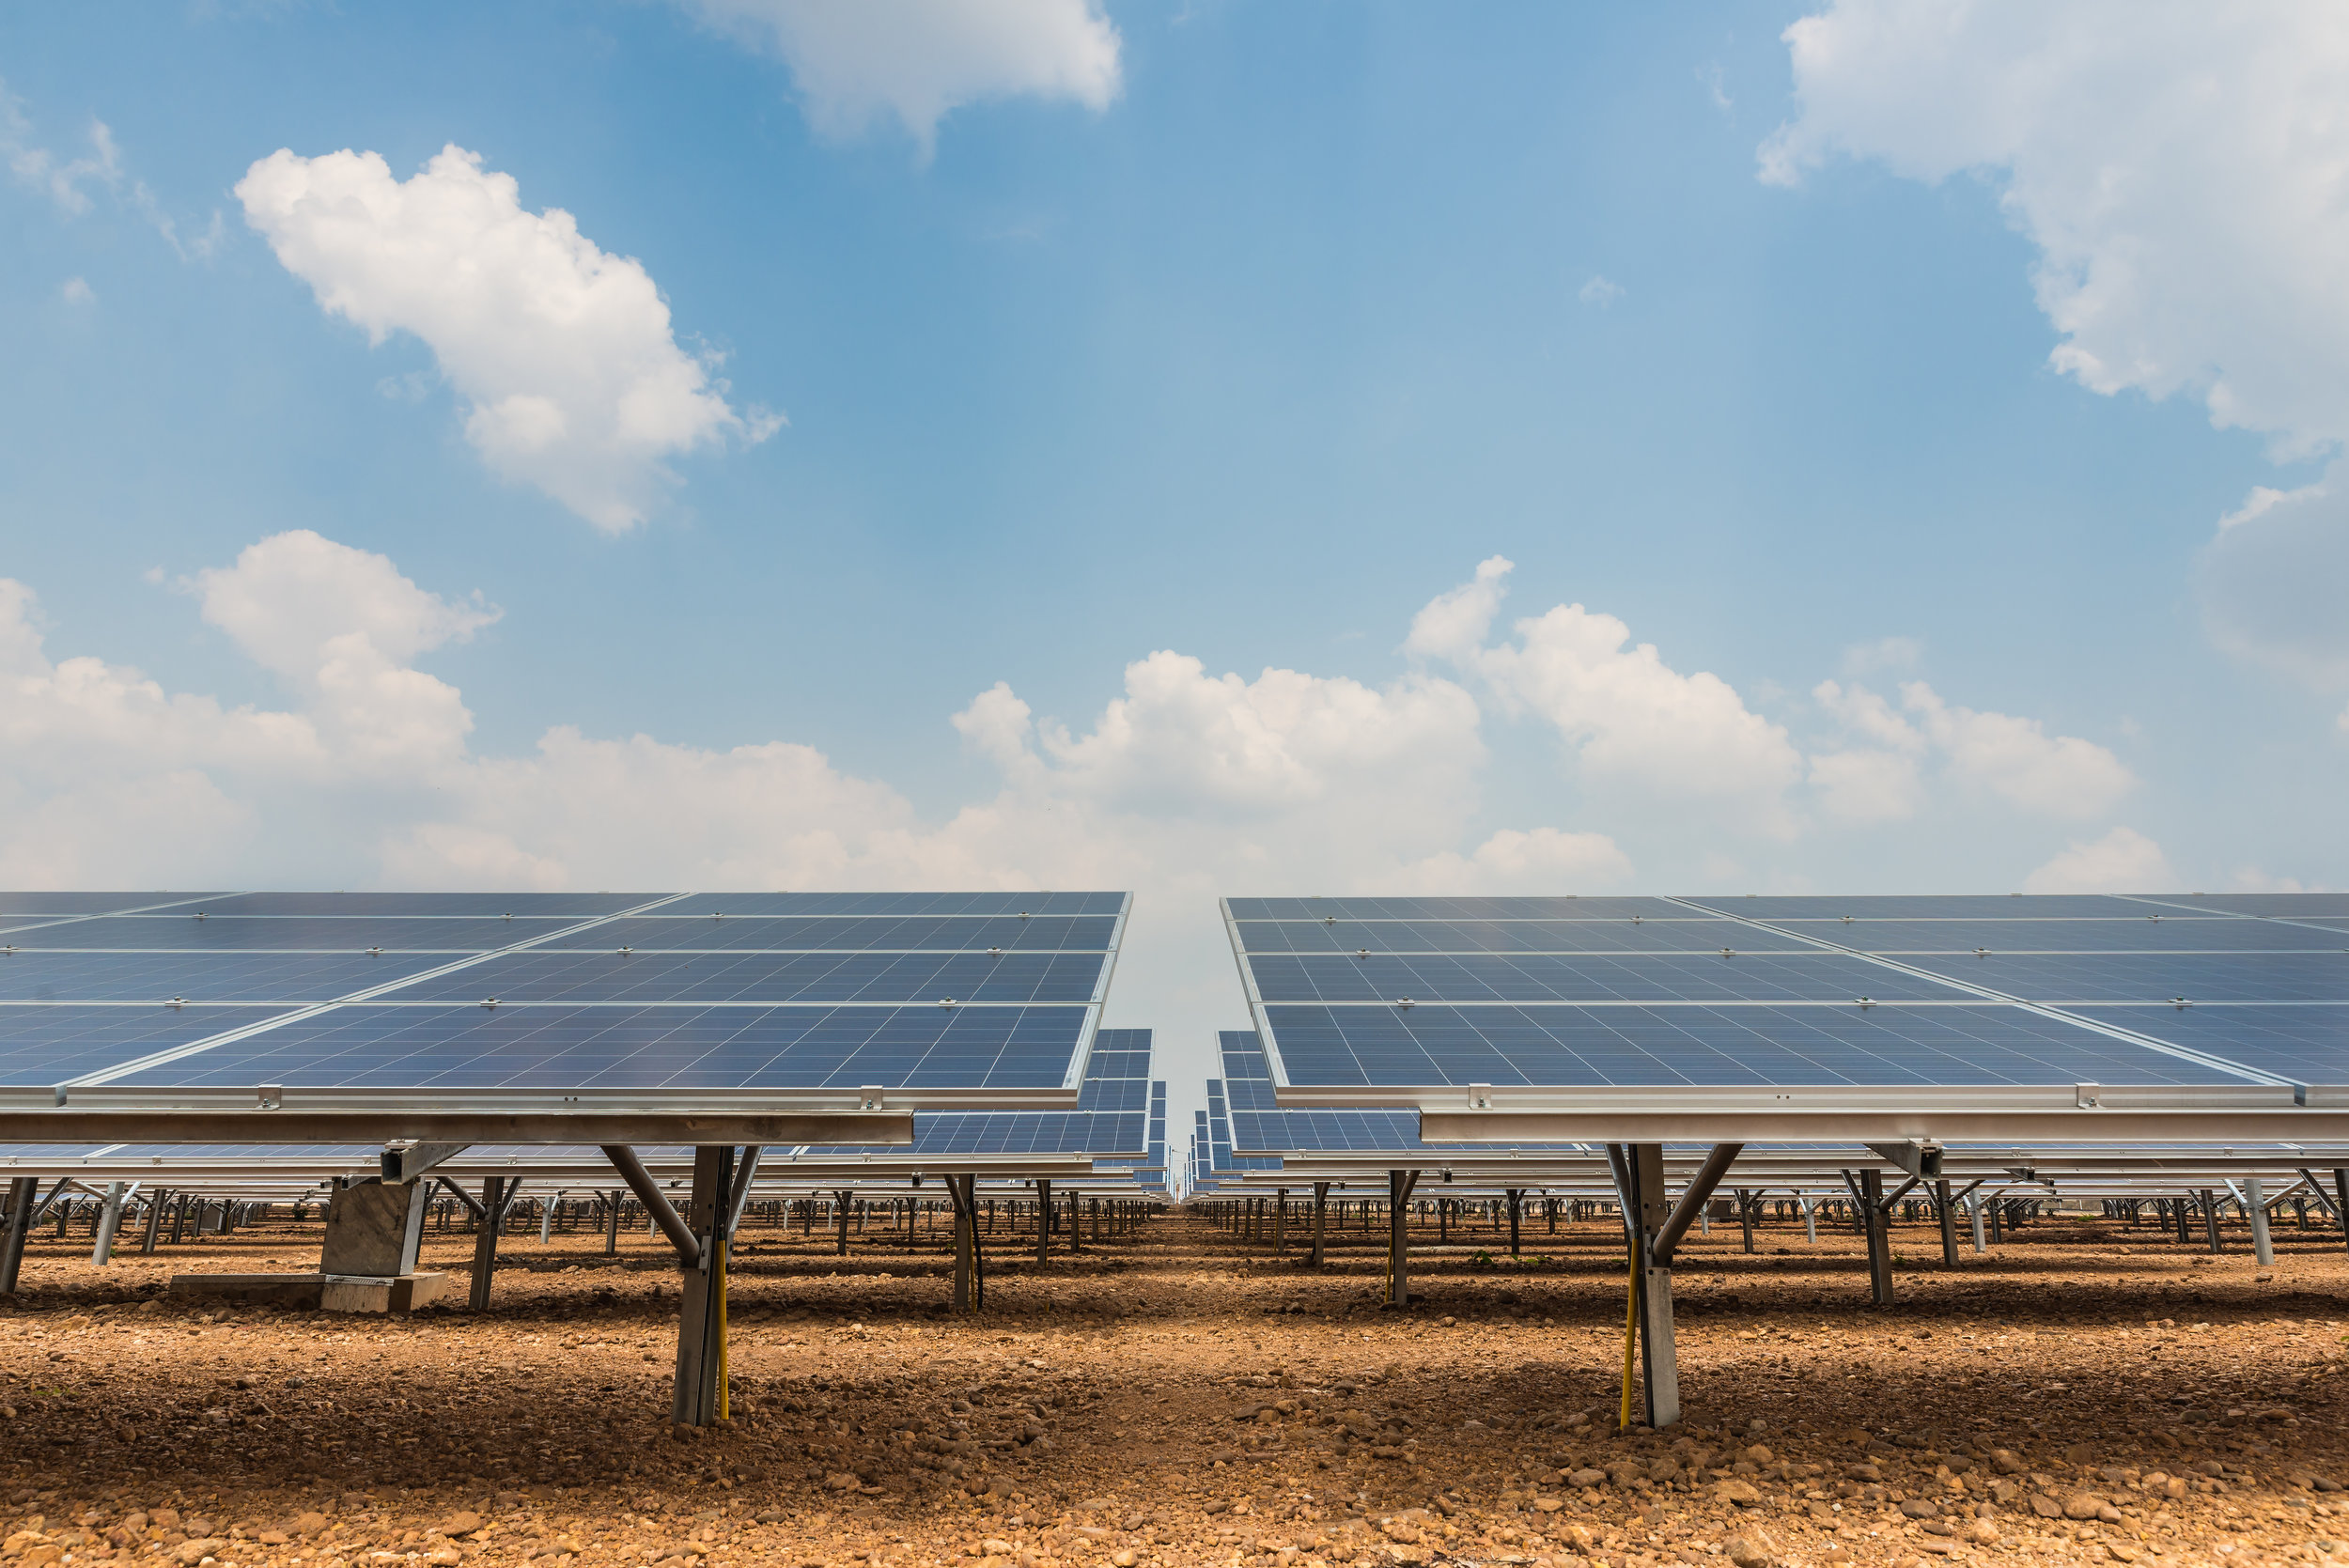 The entire Kimberley could be powered by renewable energy -